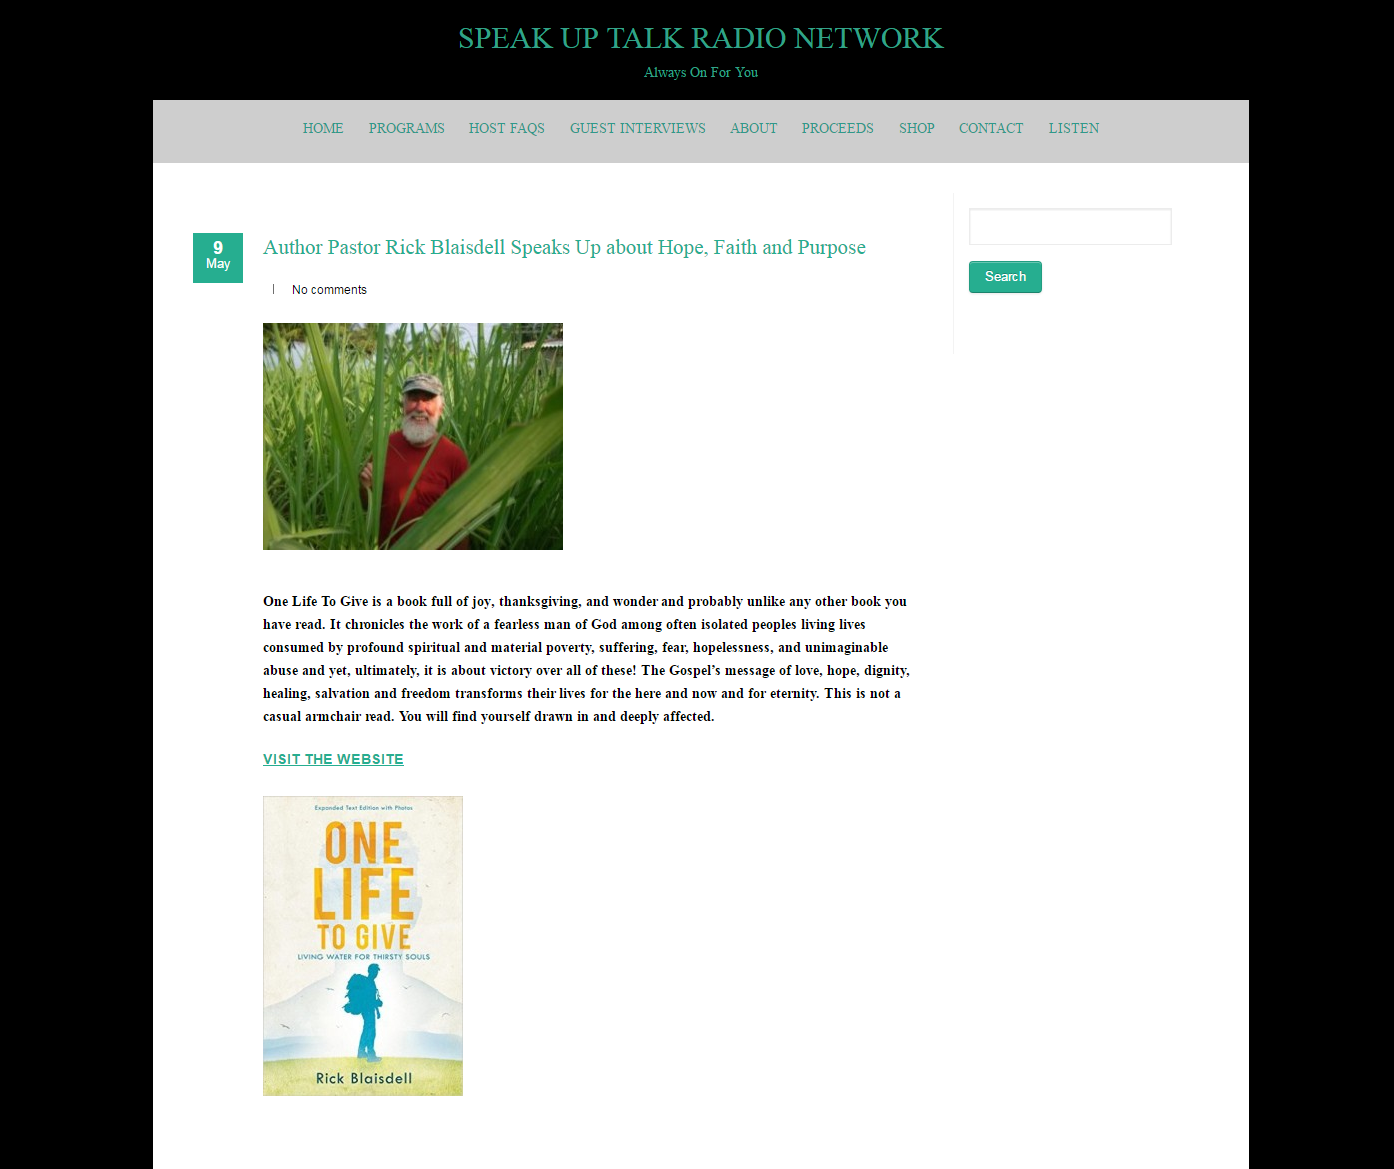 one life to give living water for thirsty souls events radio interview